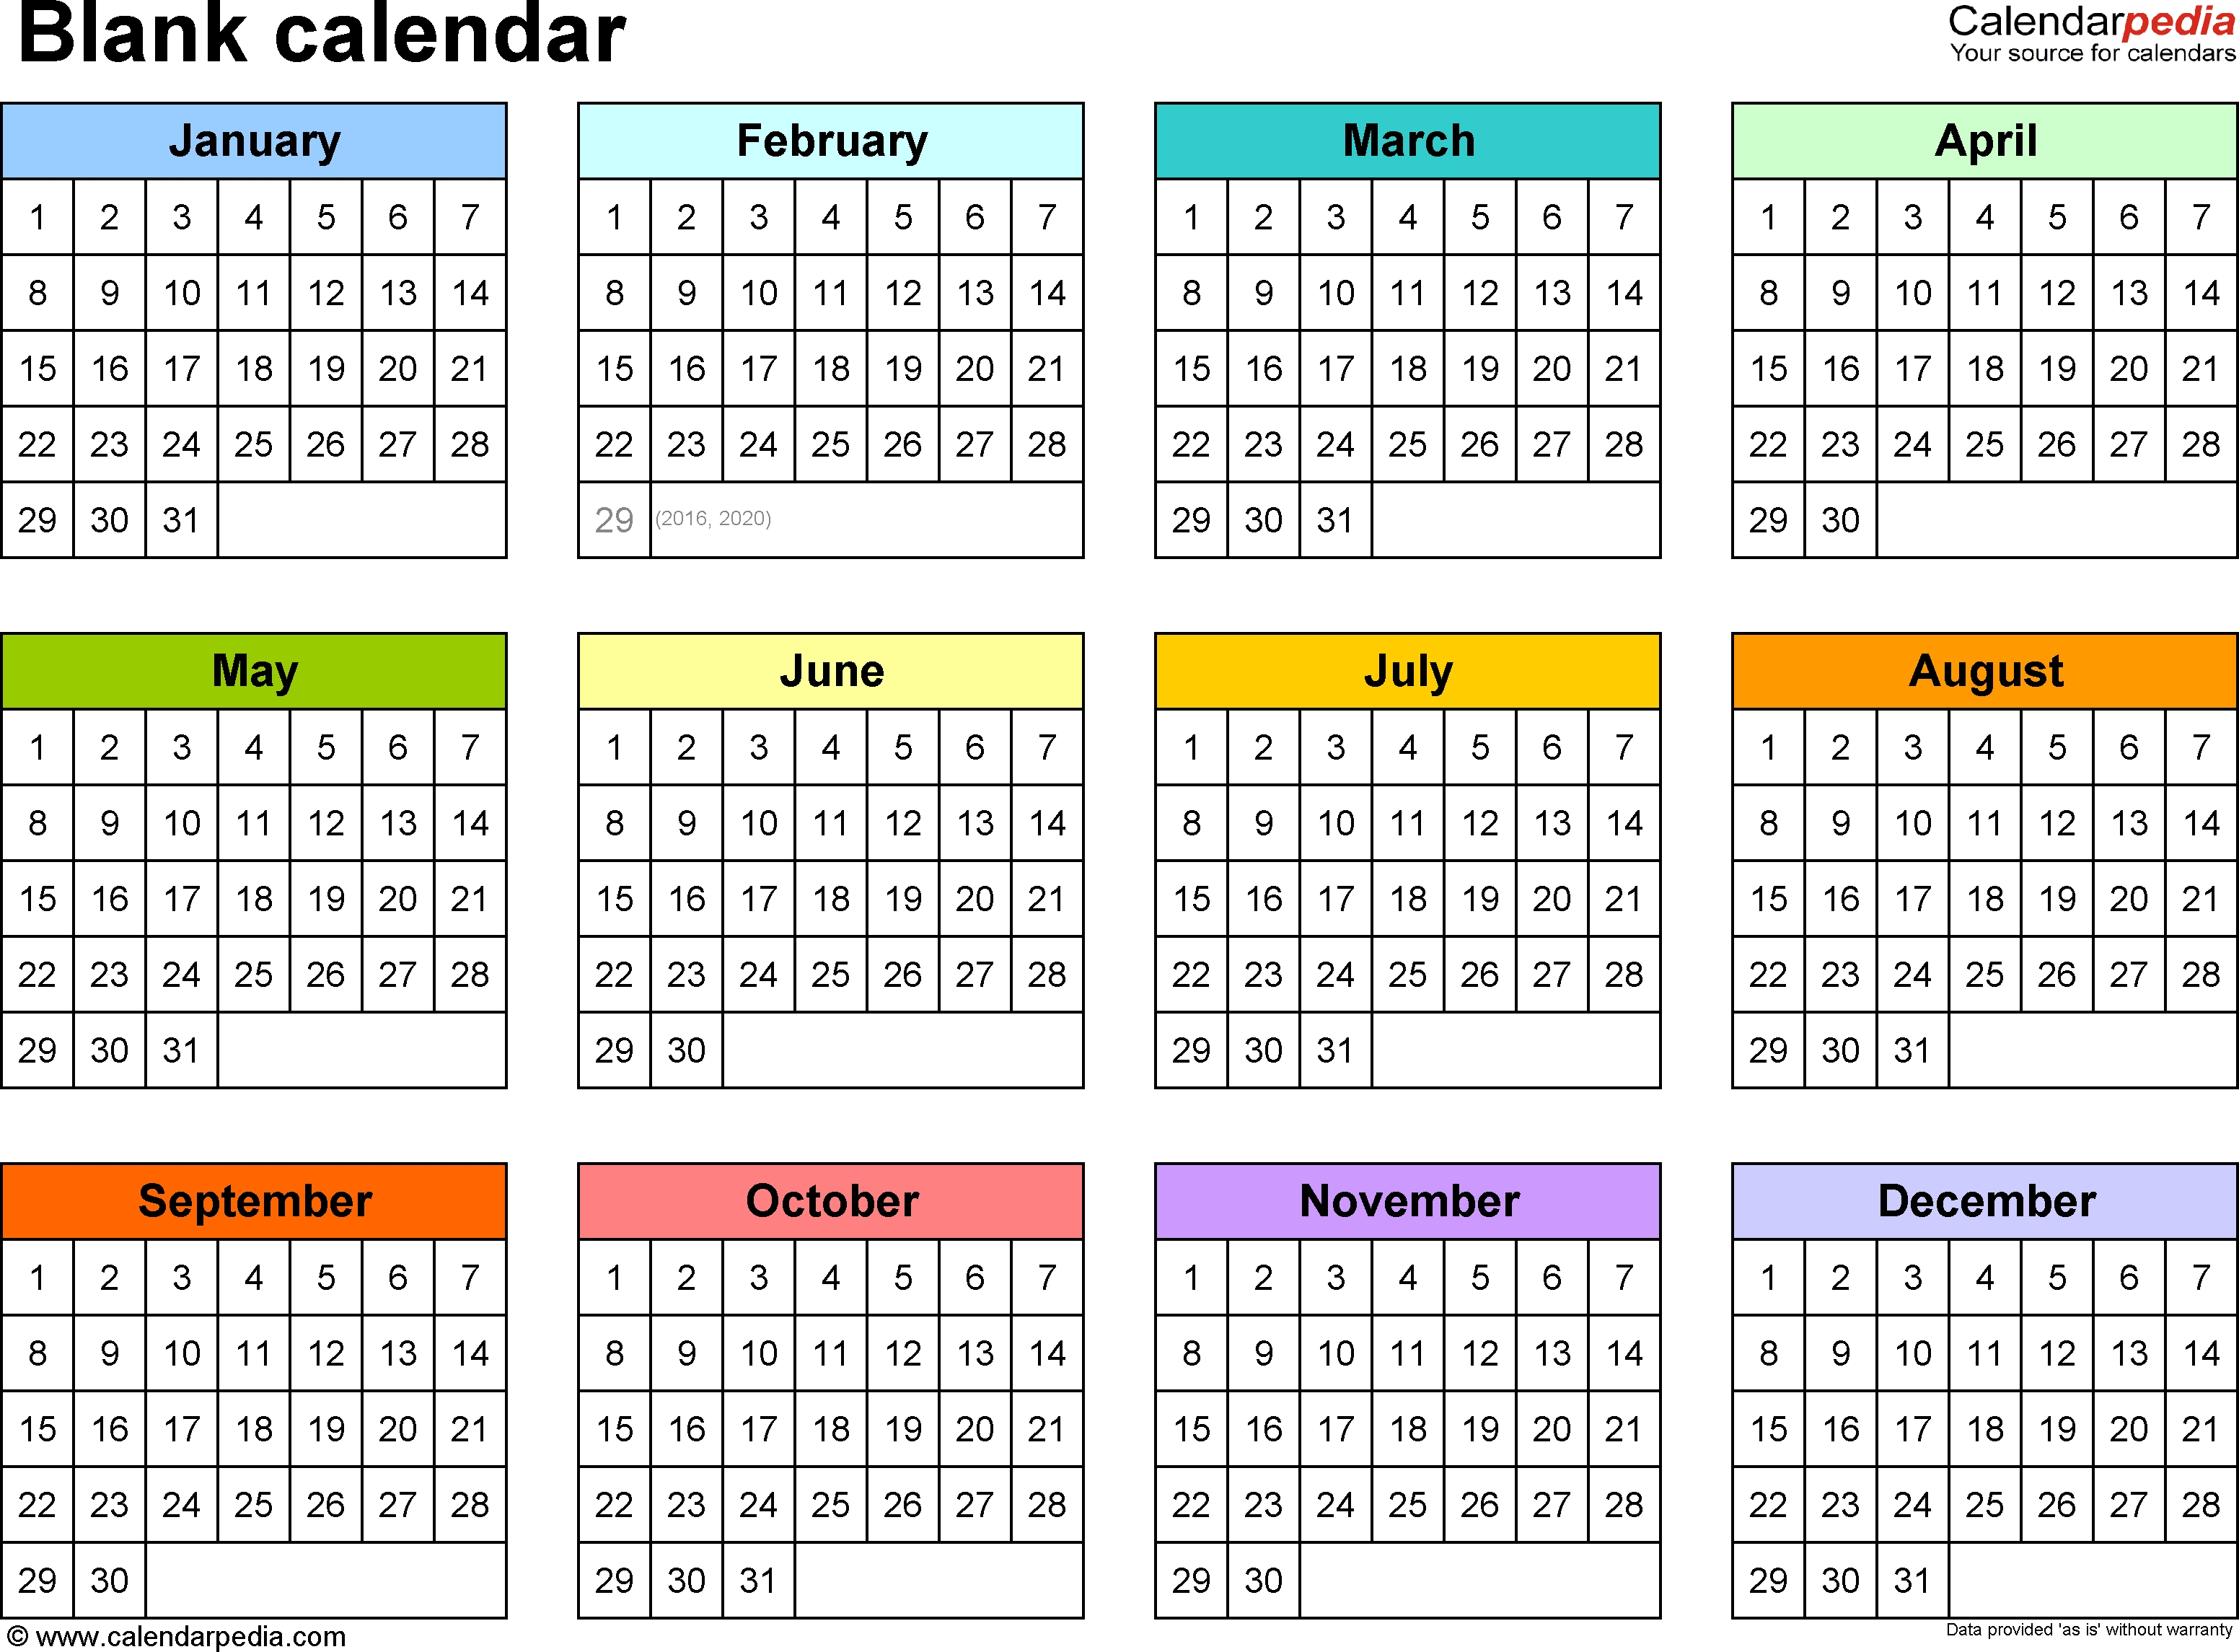 Blank Calendar - 9 Free Printable Microsoft Word Templates intended for Blank Calendar Page Year Long